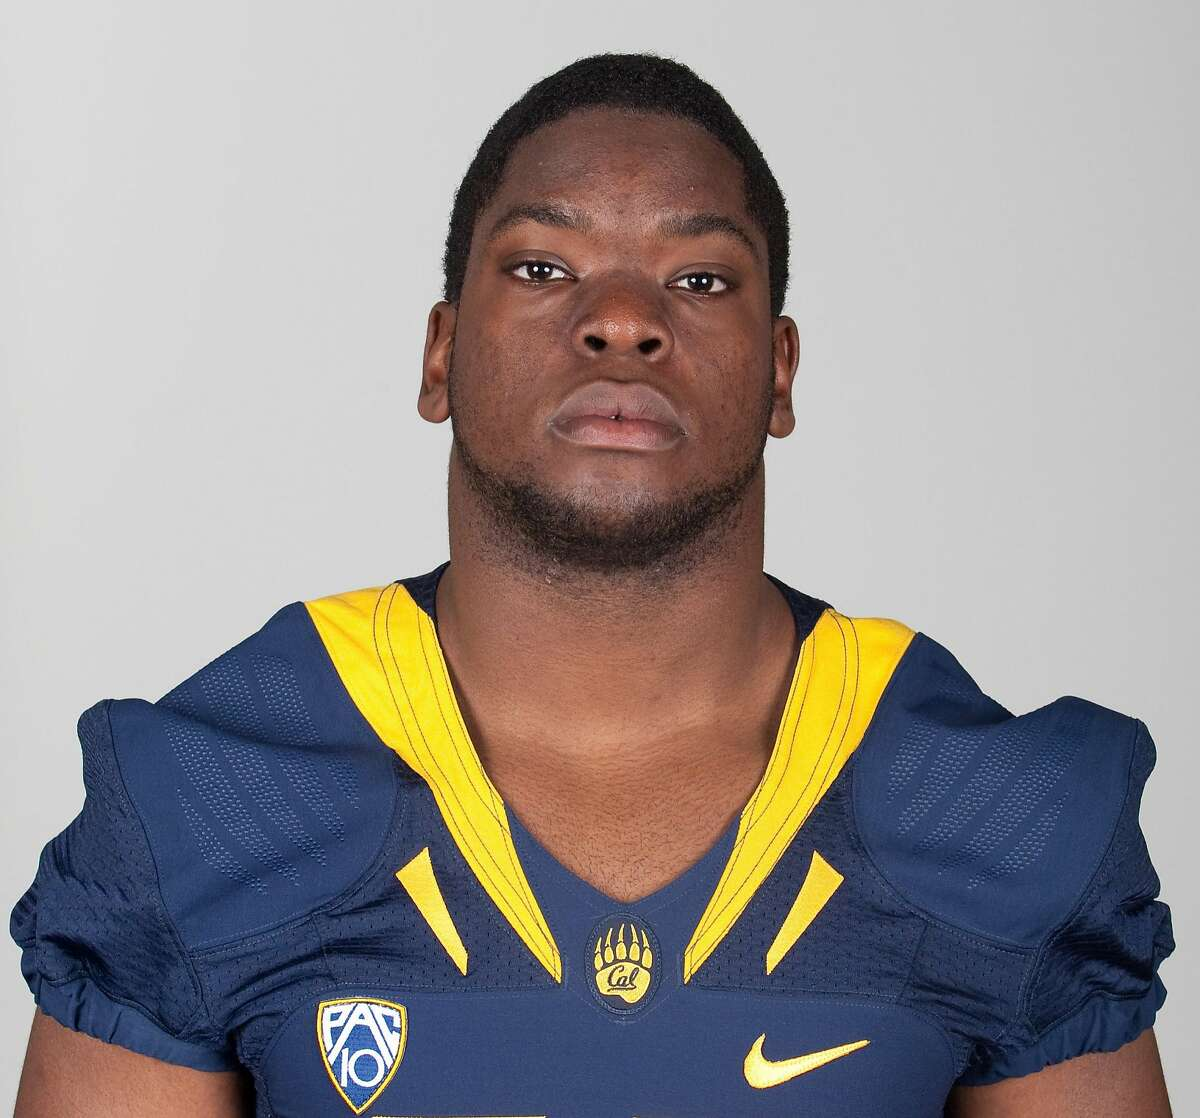 BERKELEY, CA - 2011: Ted Agu of the California Golden Bears poses for a portrait circa 2011 in Berkeley, California. (Photo by California/Collegiate Images/Getty Images)